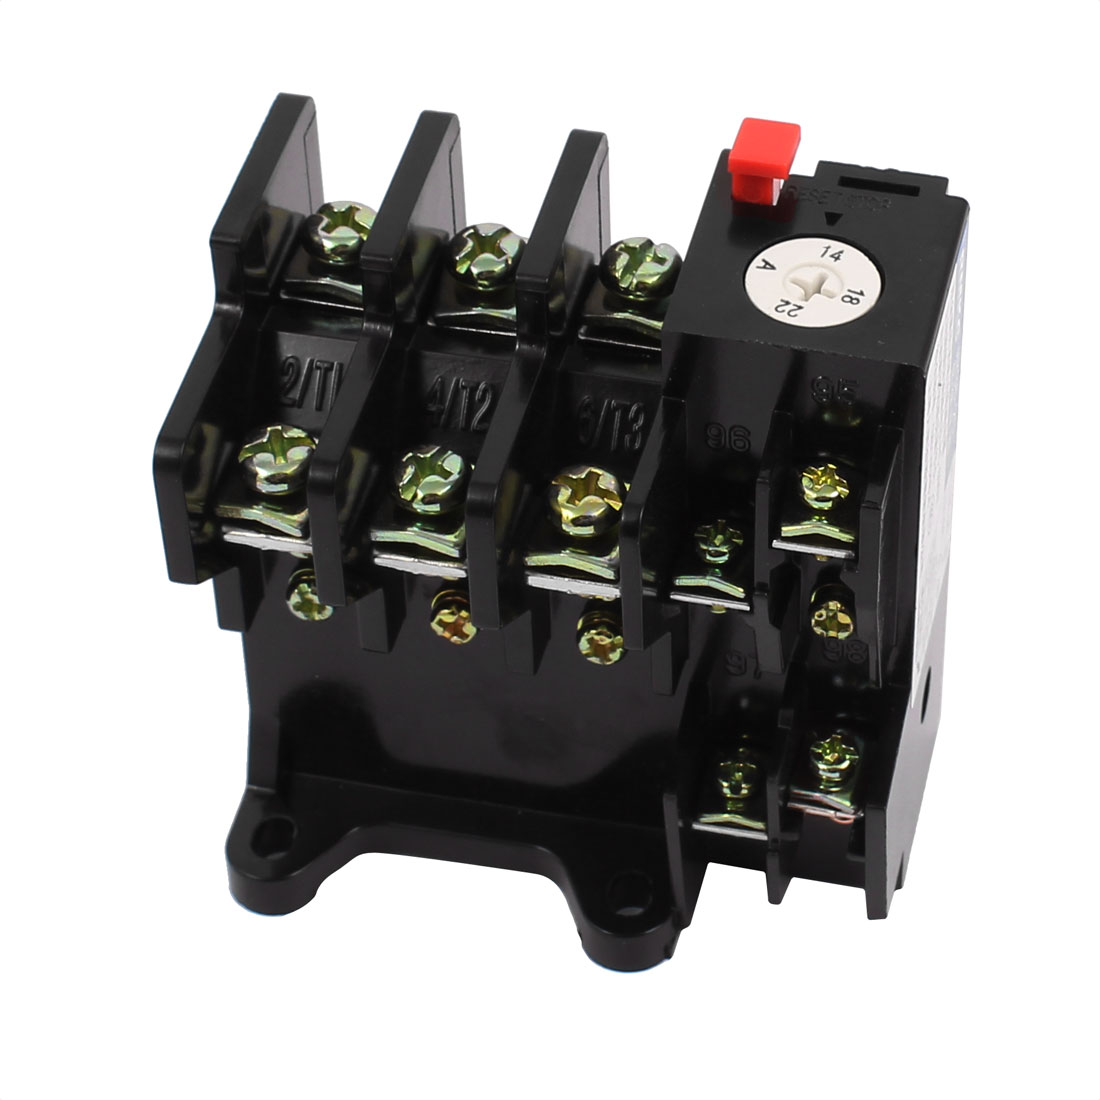 JR36-20 14-22A Three Phase Motor Protector Electric Thermal Overload Relay